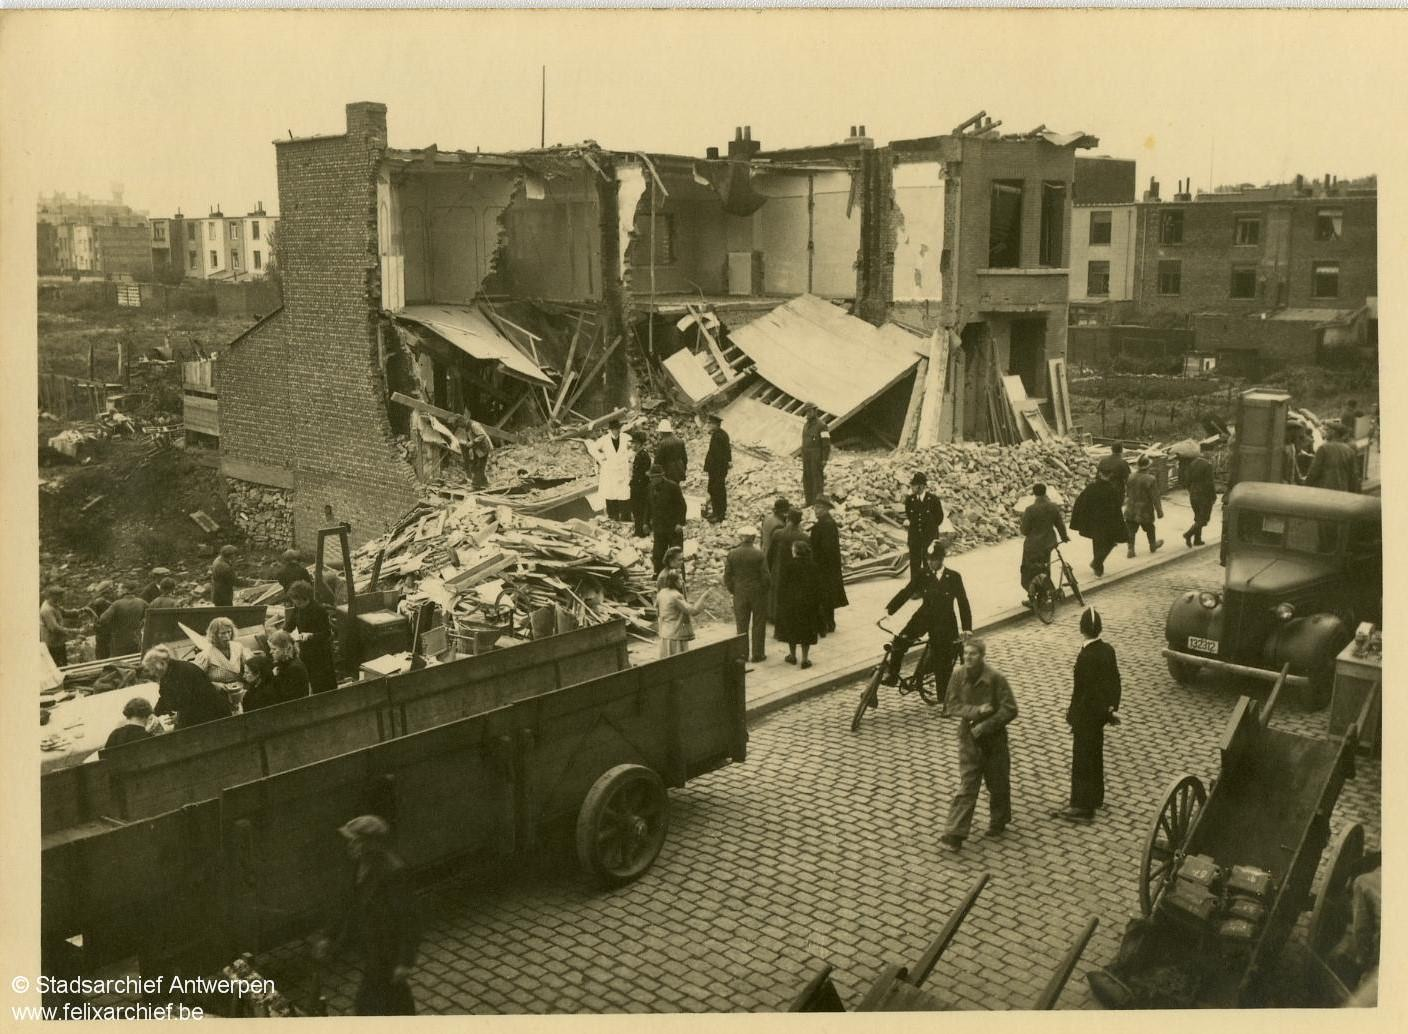 Antwerp during the Second World War